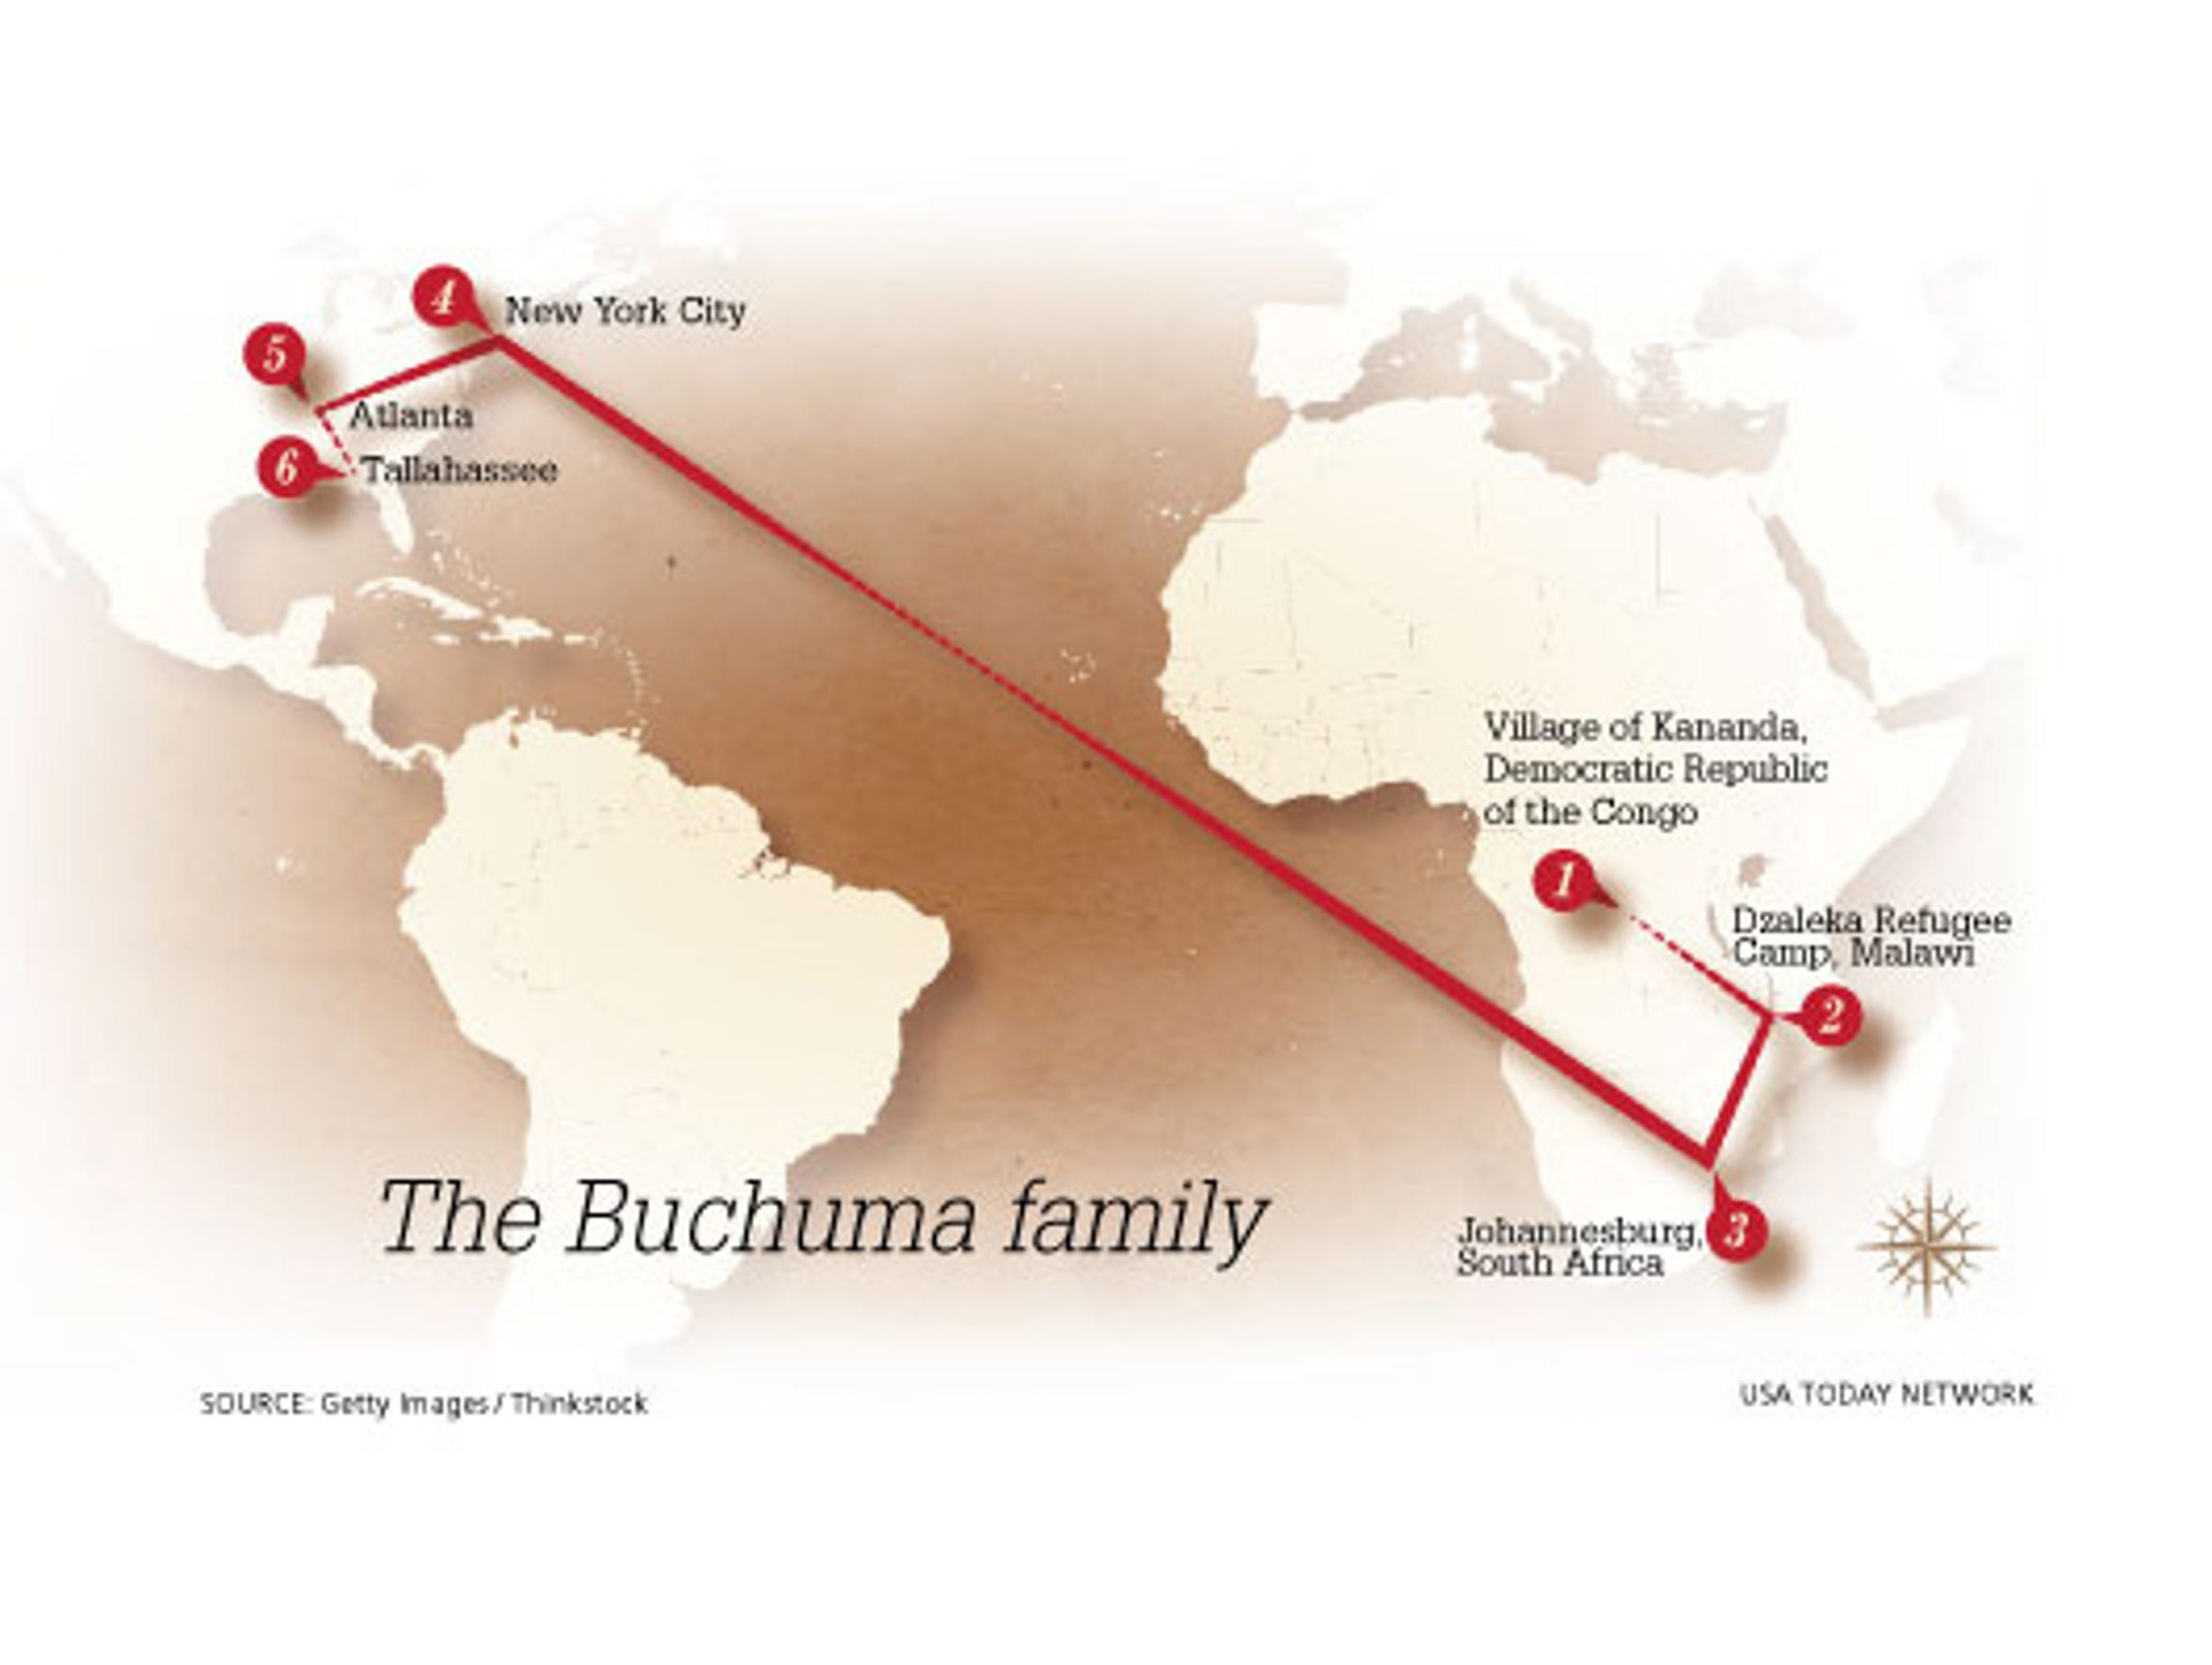 The journey of the Buchuma family from The Democratic